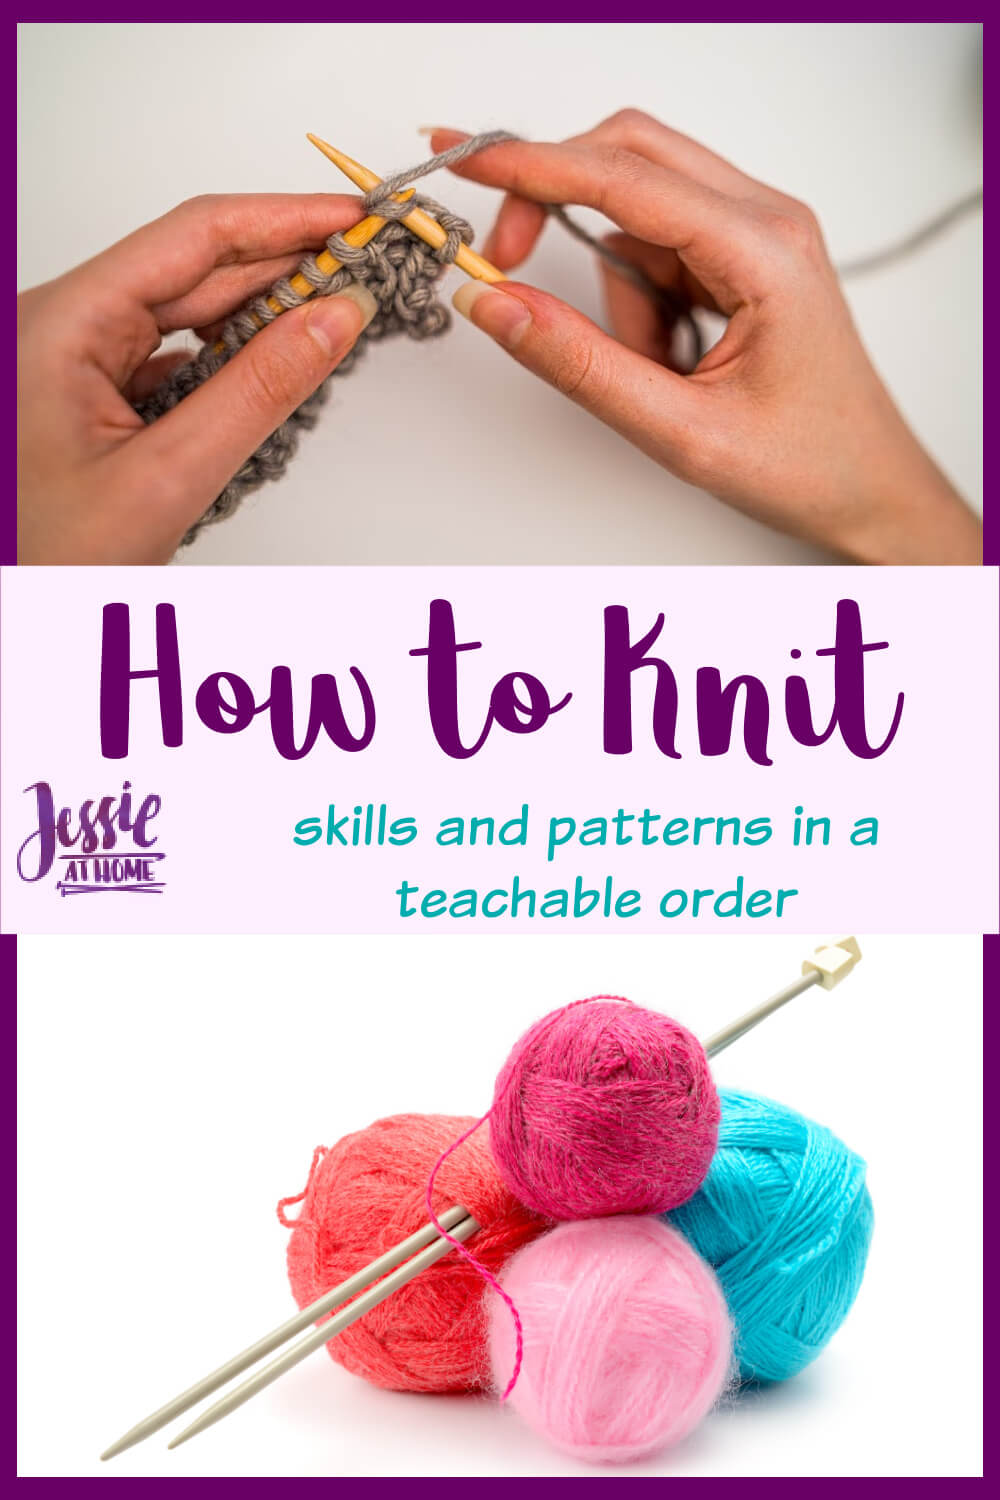 How to Knit - Skills and patterns in a teachable order!